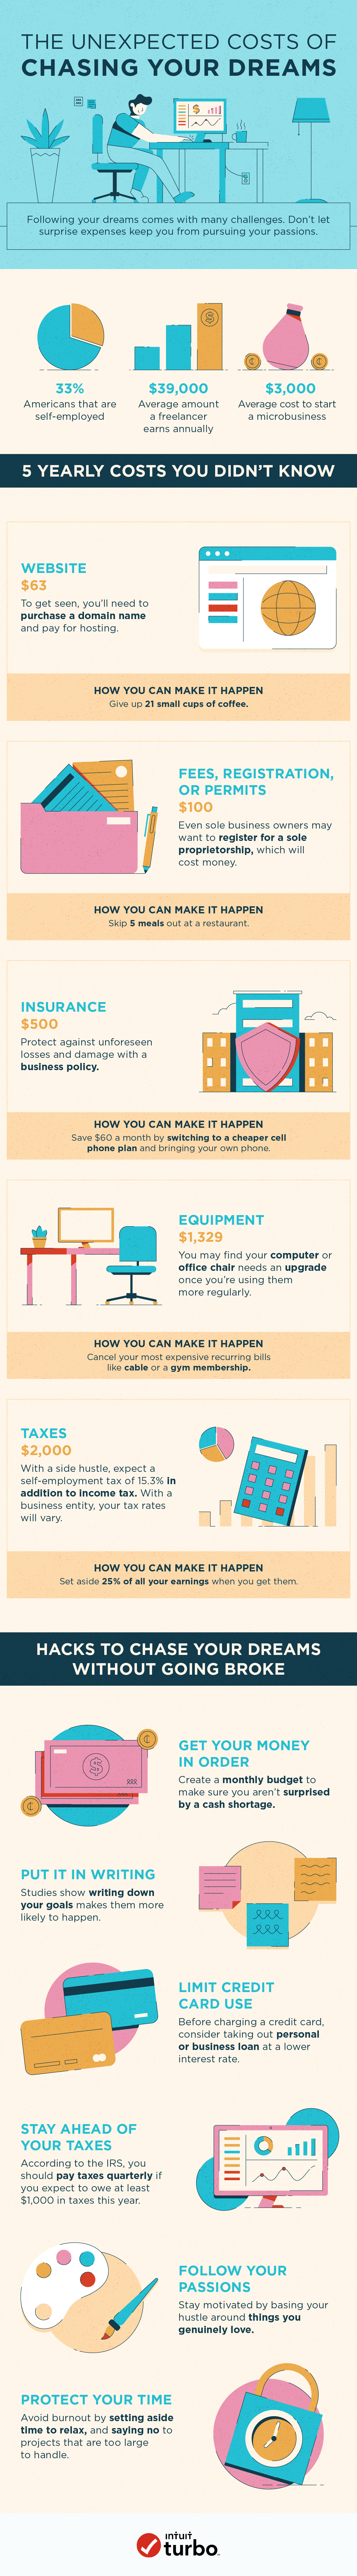 5 Expenses to Consider When You Start Planning Your Work-At-Home Life | The Unexpected Costs of Chasing Your Dreams | tawnimarie.com | Guest Post from Turbo